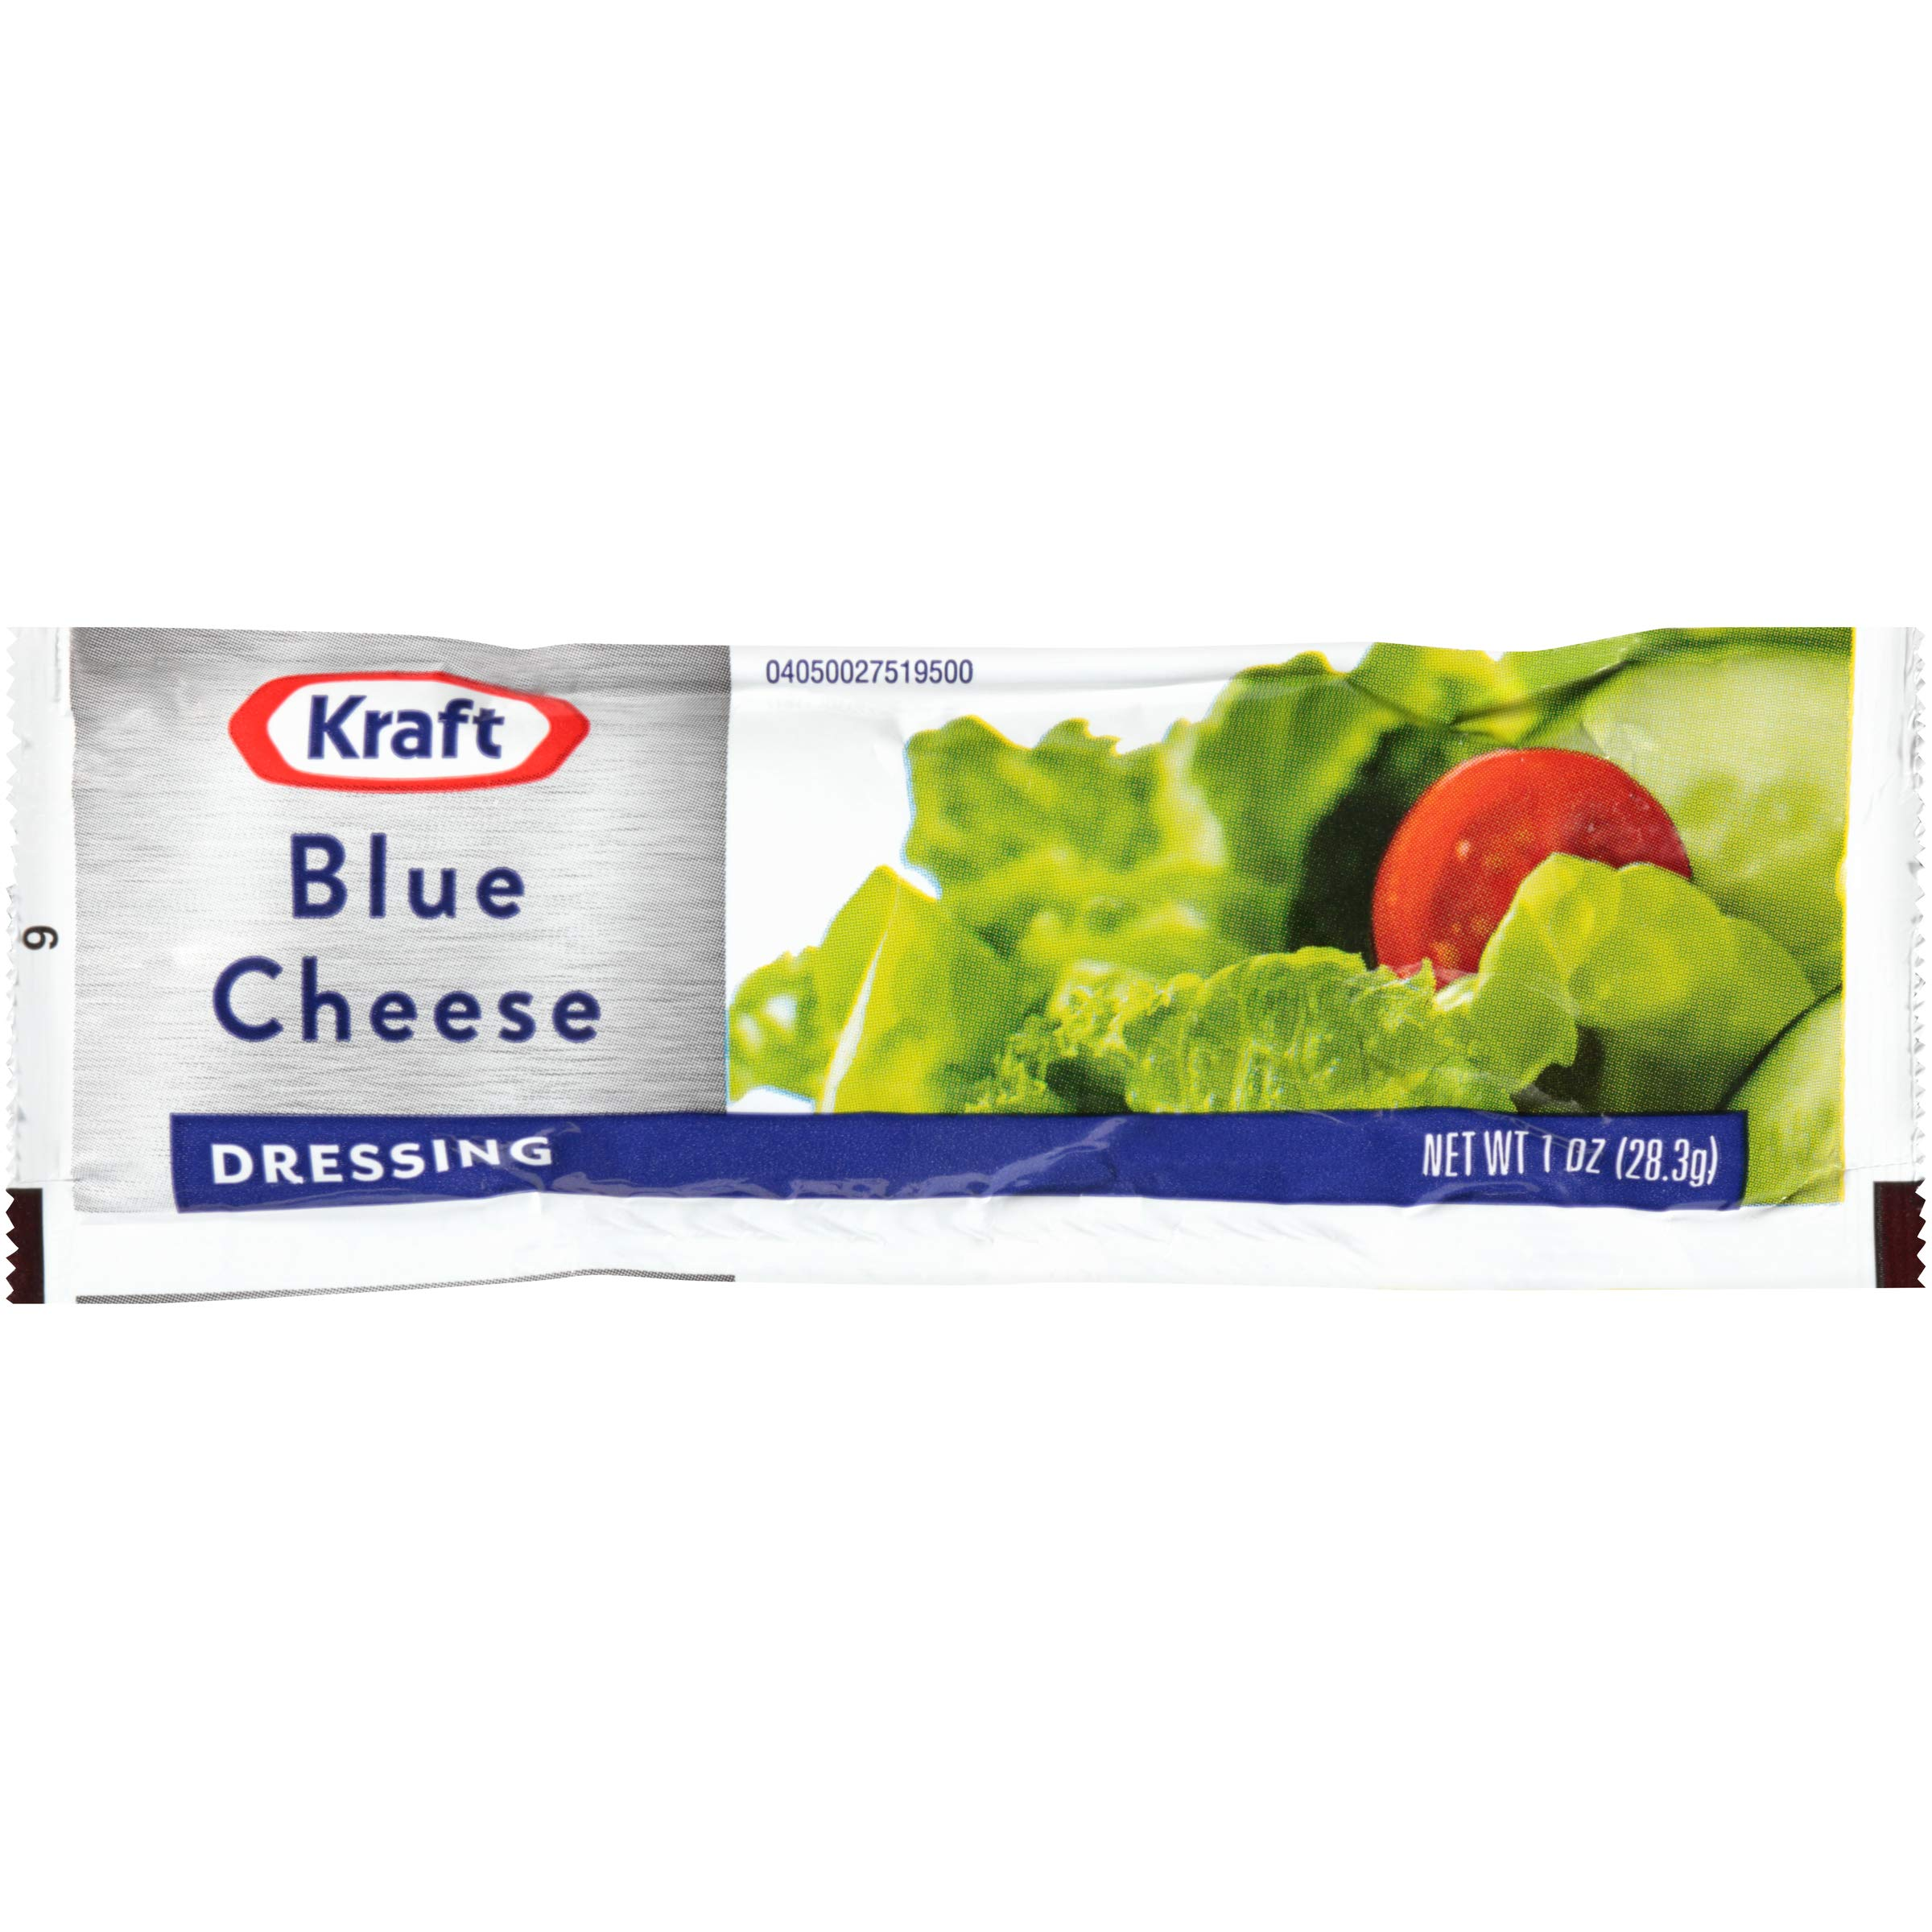 Kraft Blue Cheese Salad Dressing, 1-Ounce Packages (Pack of 100) by Kraft (Image #3)